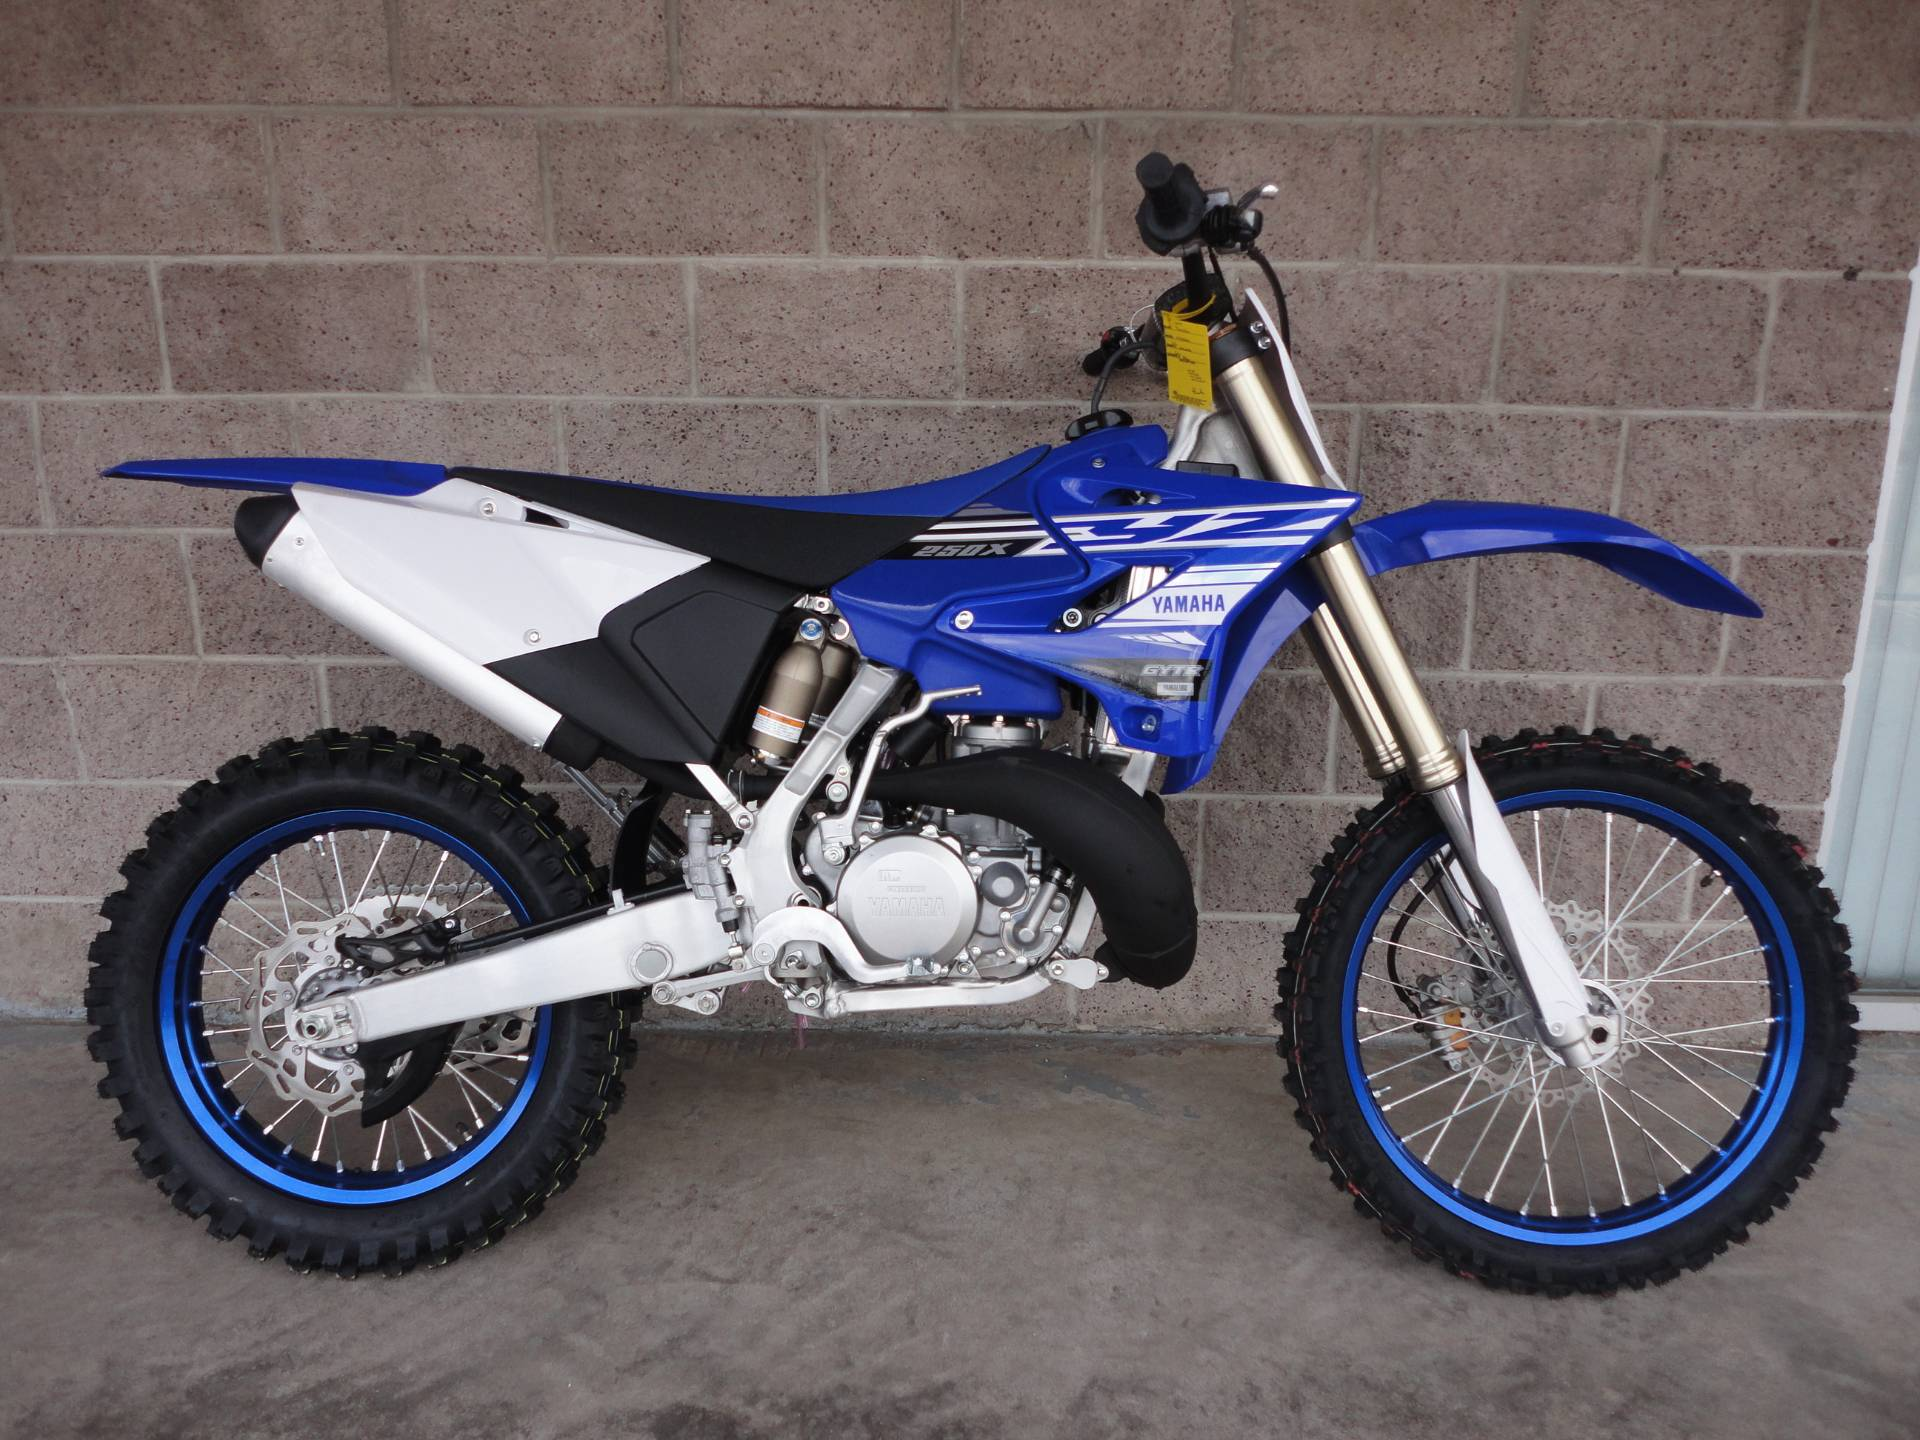 2019 yamaha yz250x motorcycles denver colorado v6075 for Yamaha installment financing